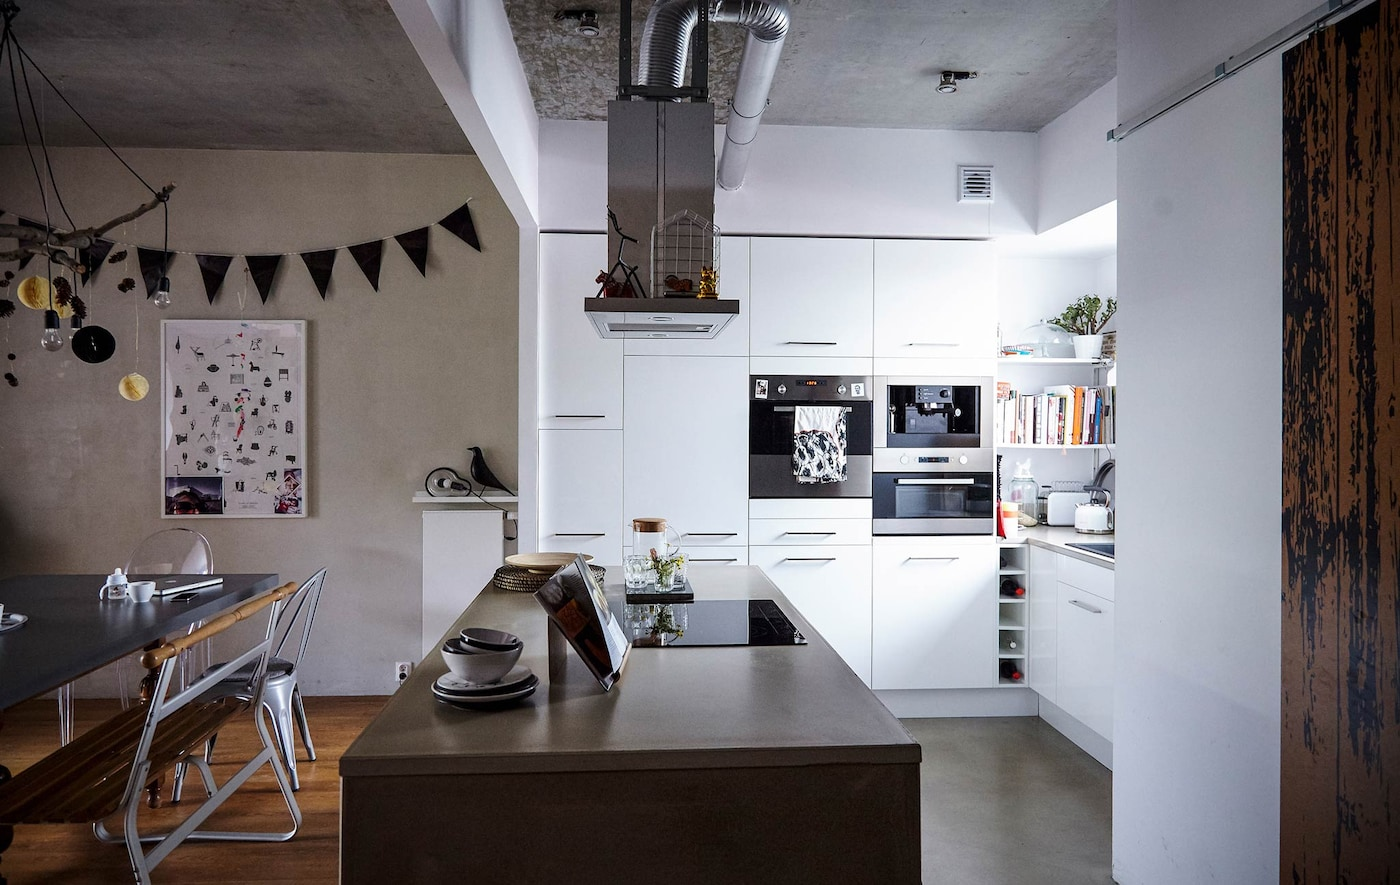 White cabinets and a large kitchen island with concrete counter top in a white, modern kitchen.